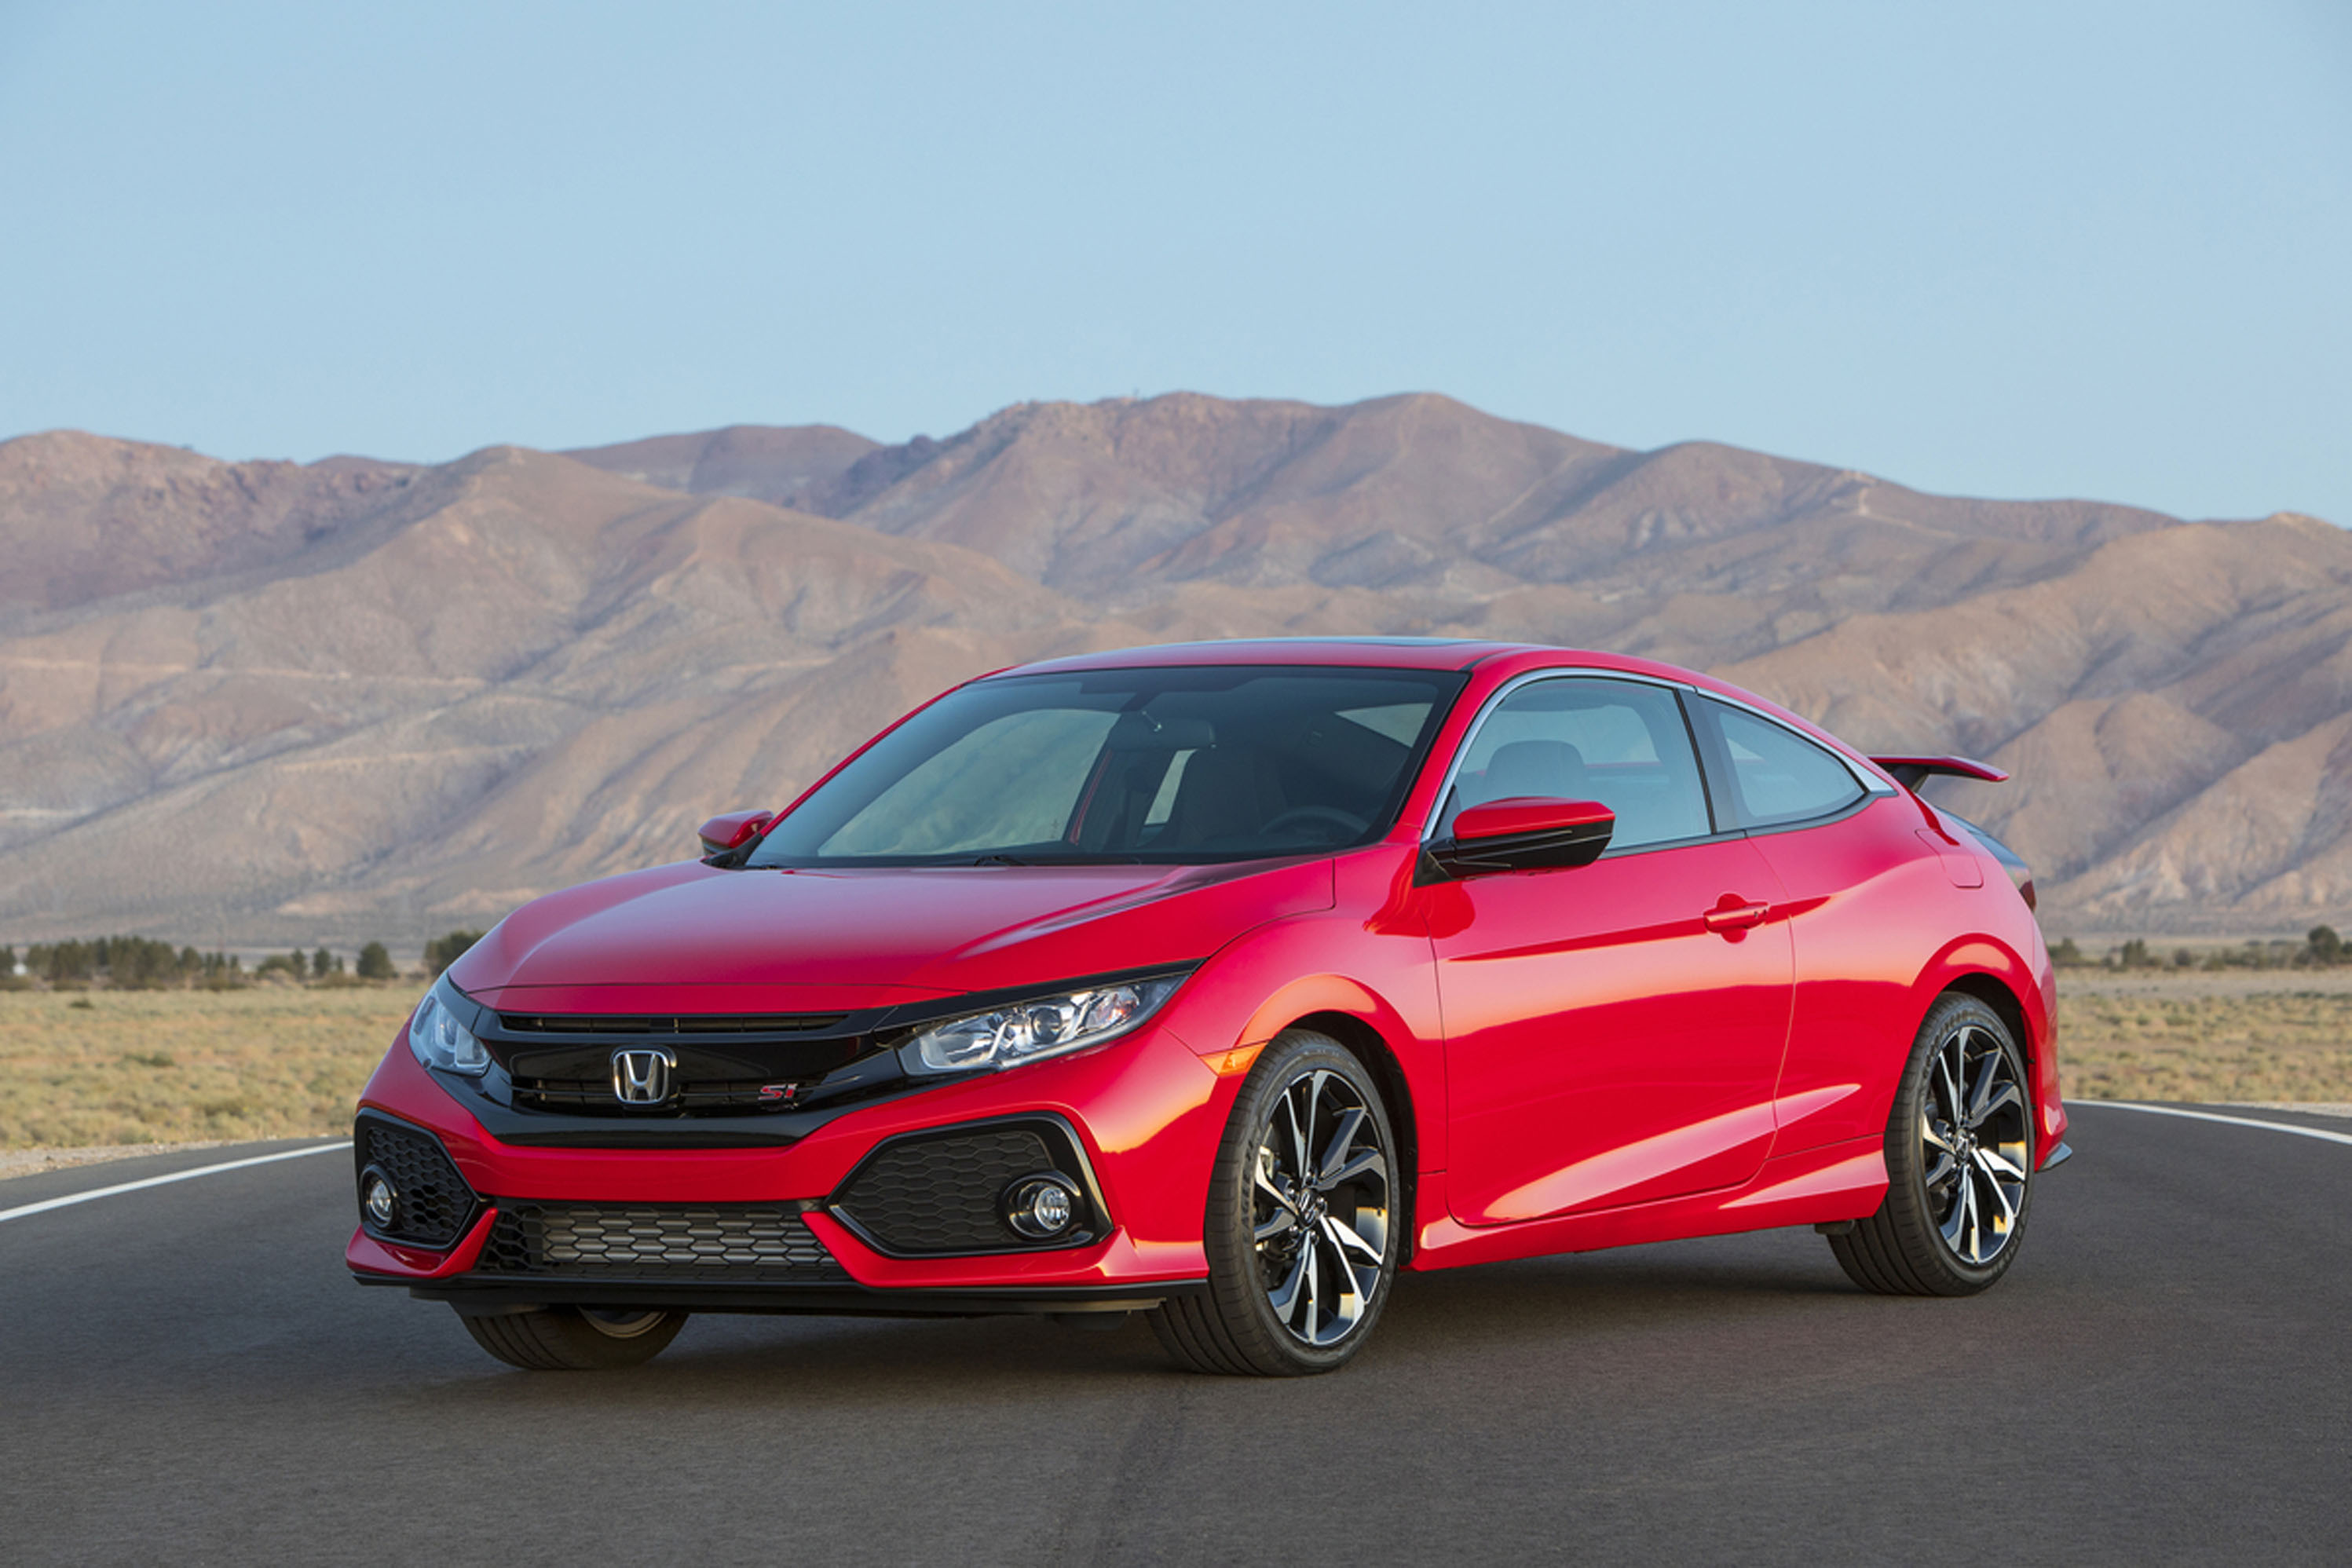 2017 Honda Civic Gas Mileage >> 2019 Honda Civic Review Ratings Specs Prices And Photos